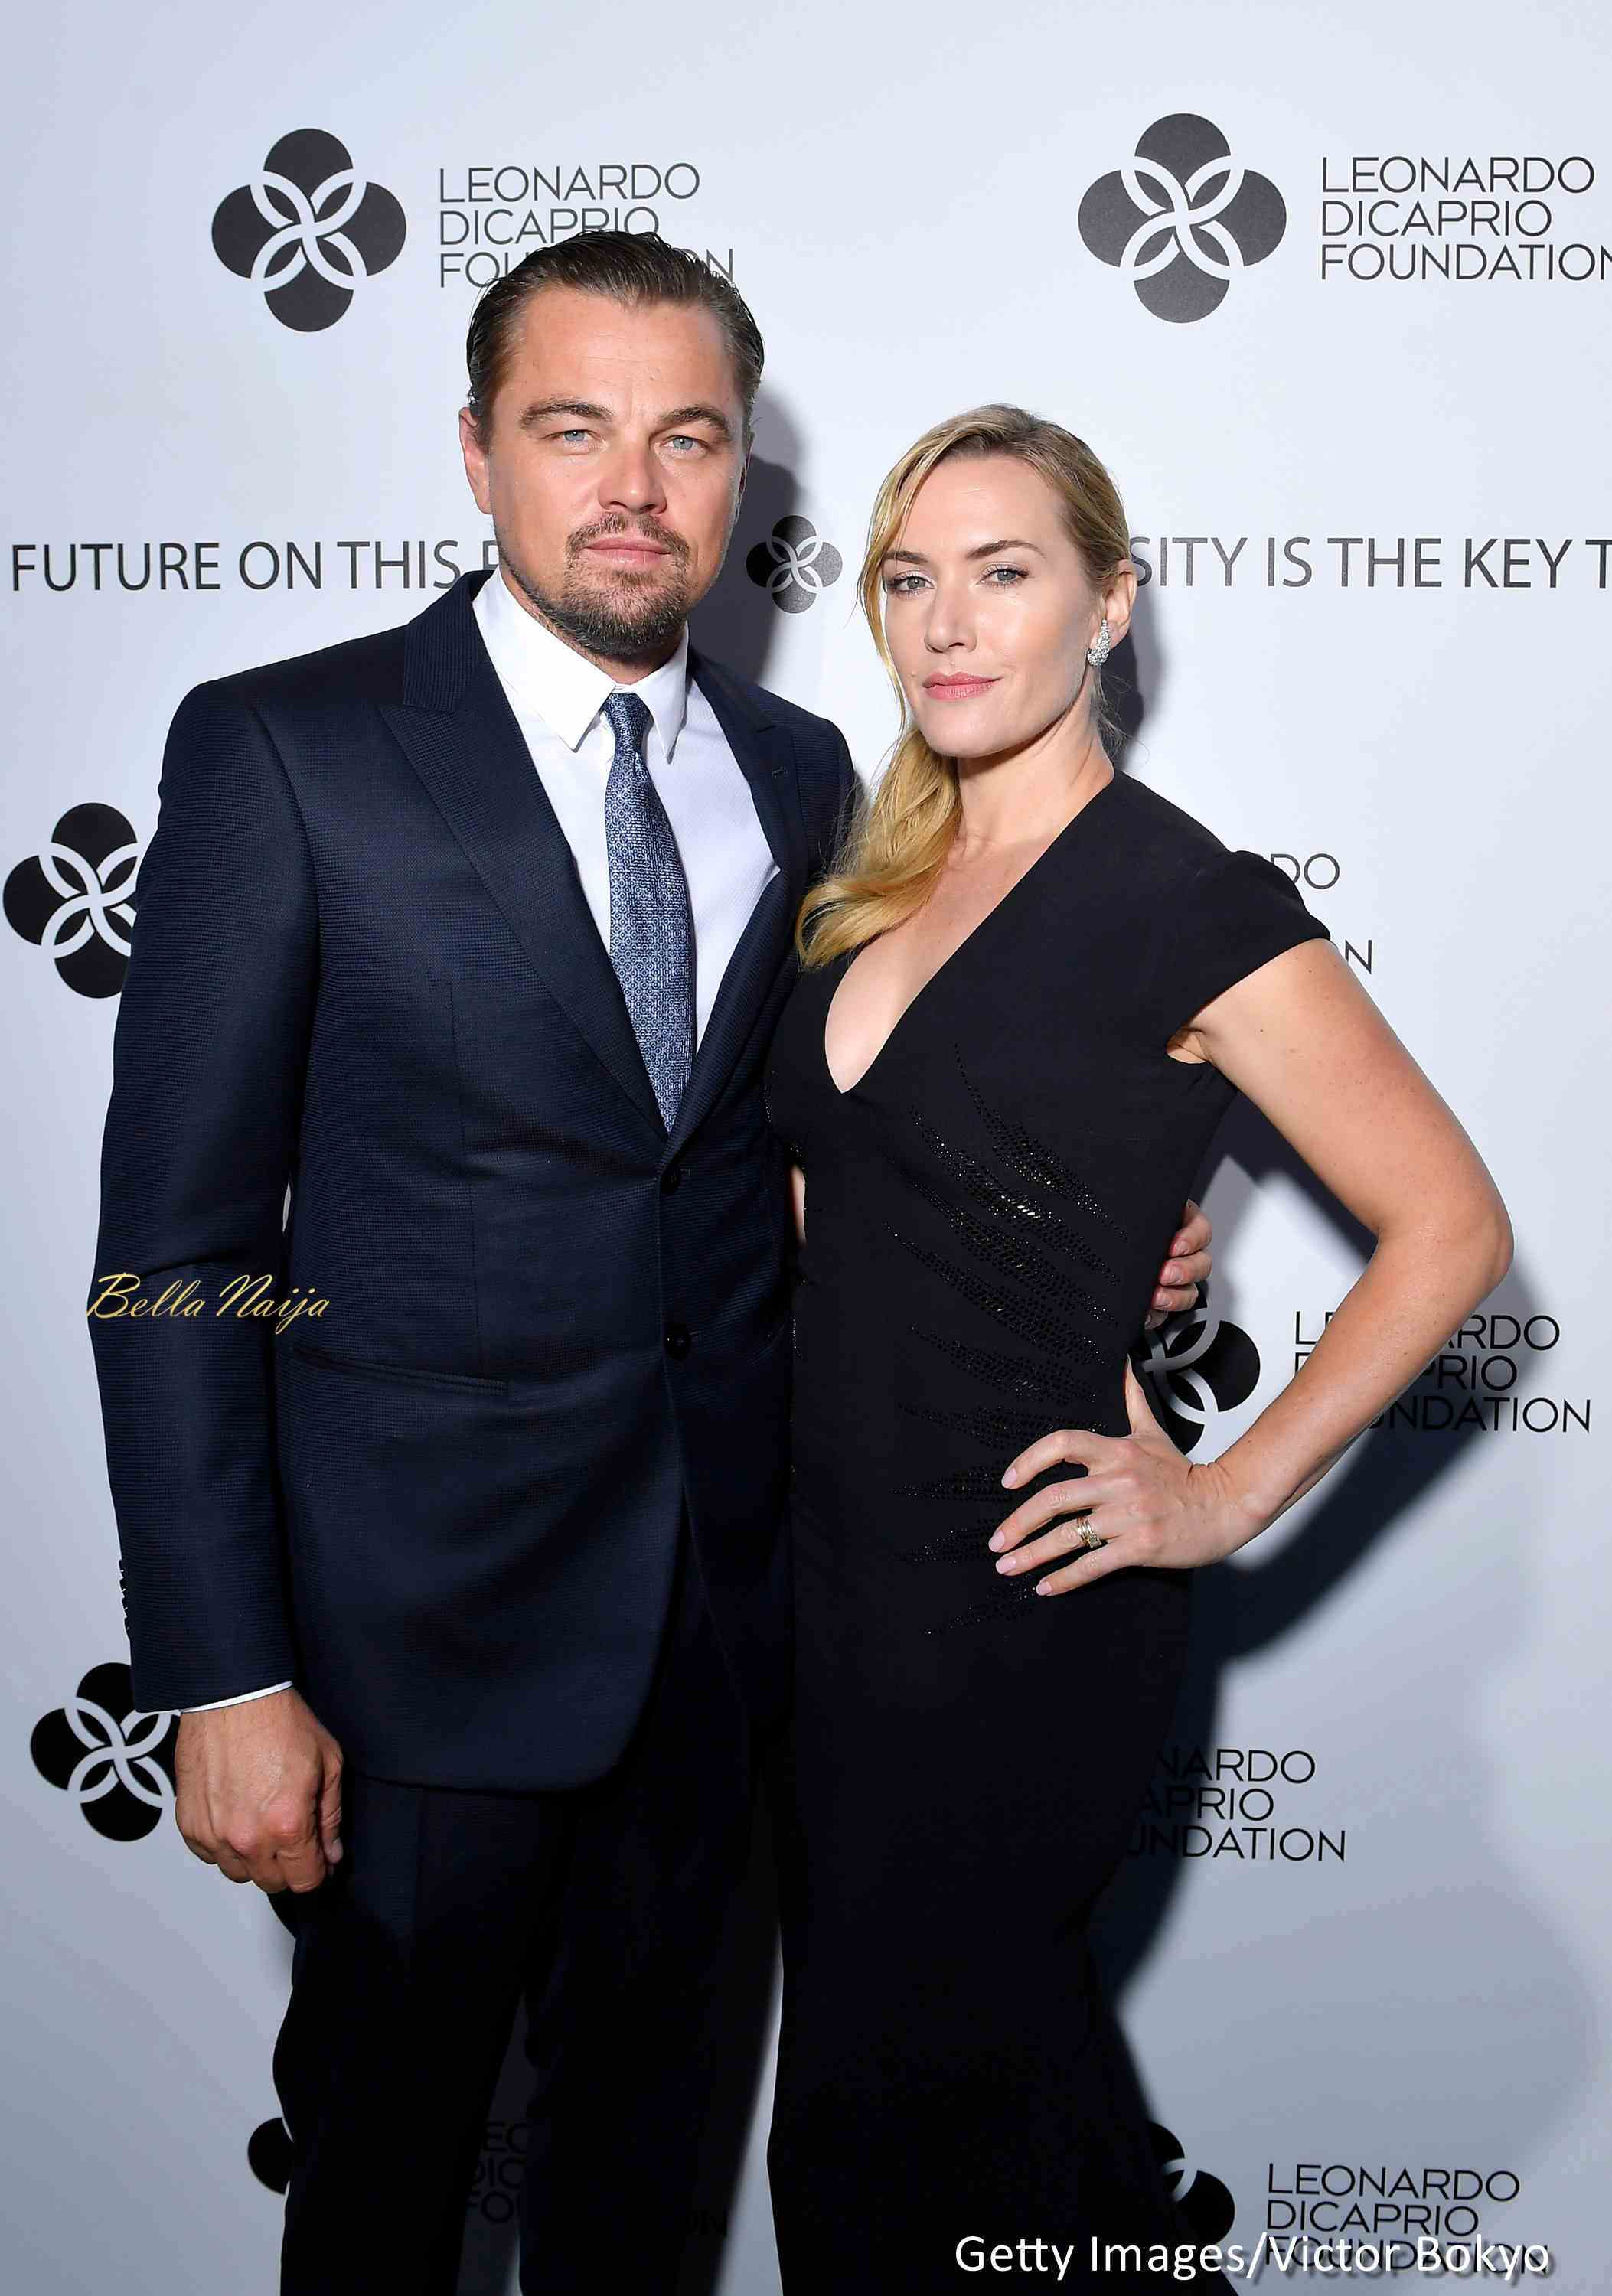 Kate Winslet & Leonardo DiCaprio save Mum battling with Cancer